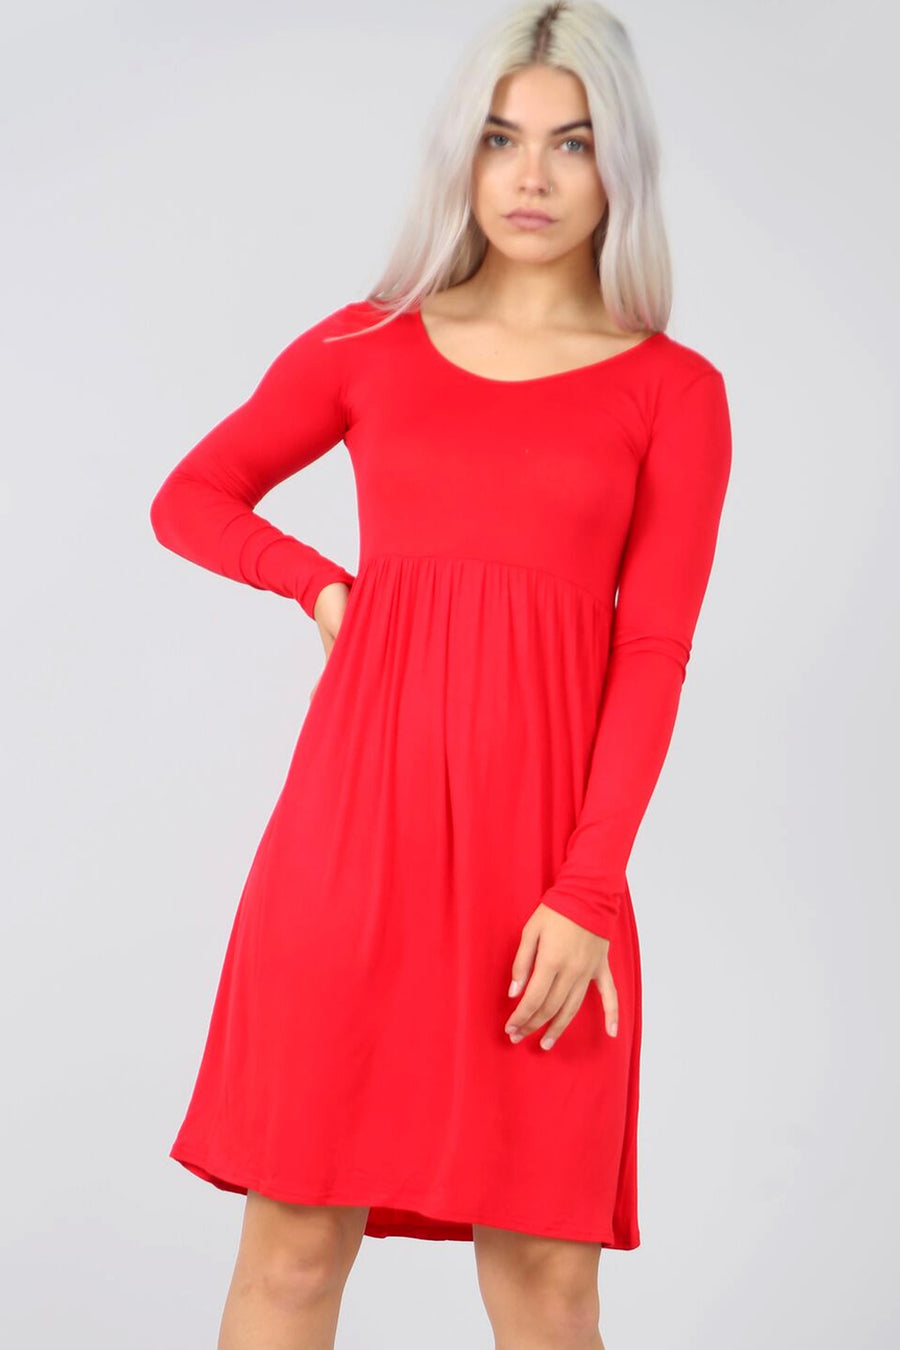 Long Sleeve Basic Red Midi Swing Dress - bejealous-com